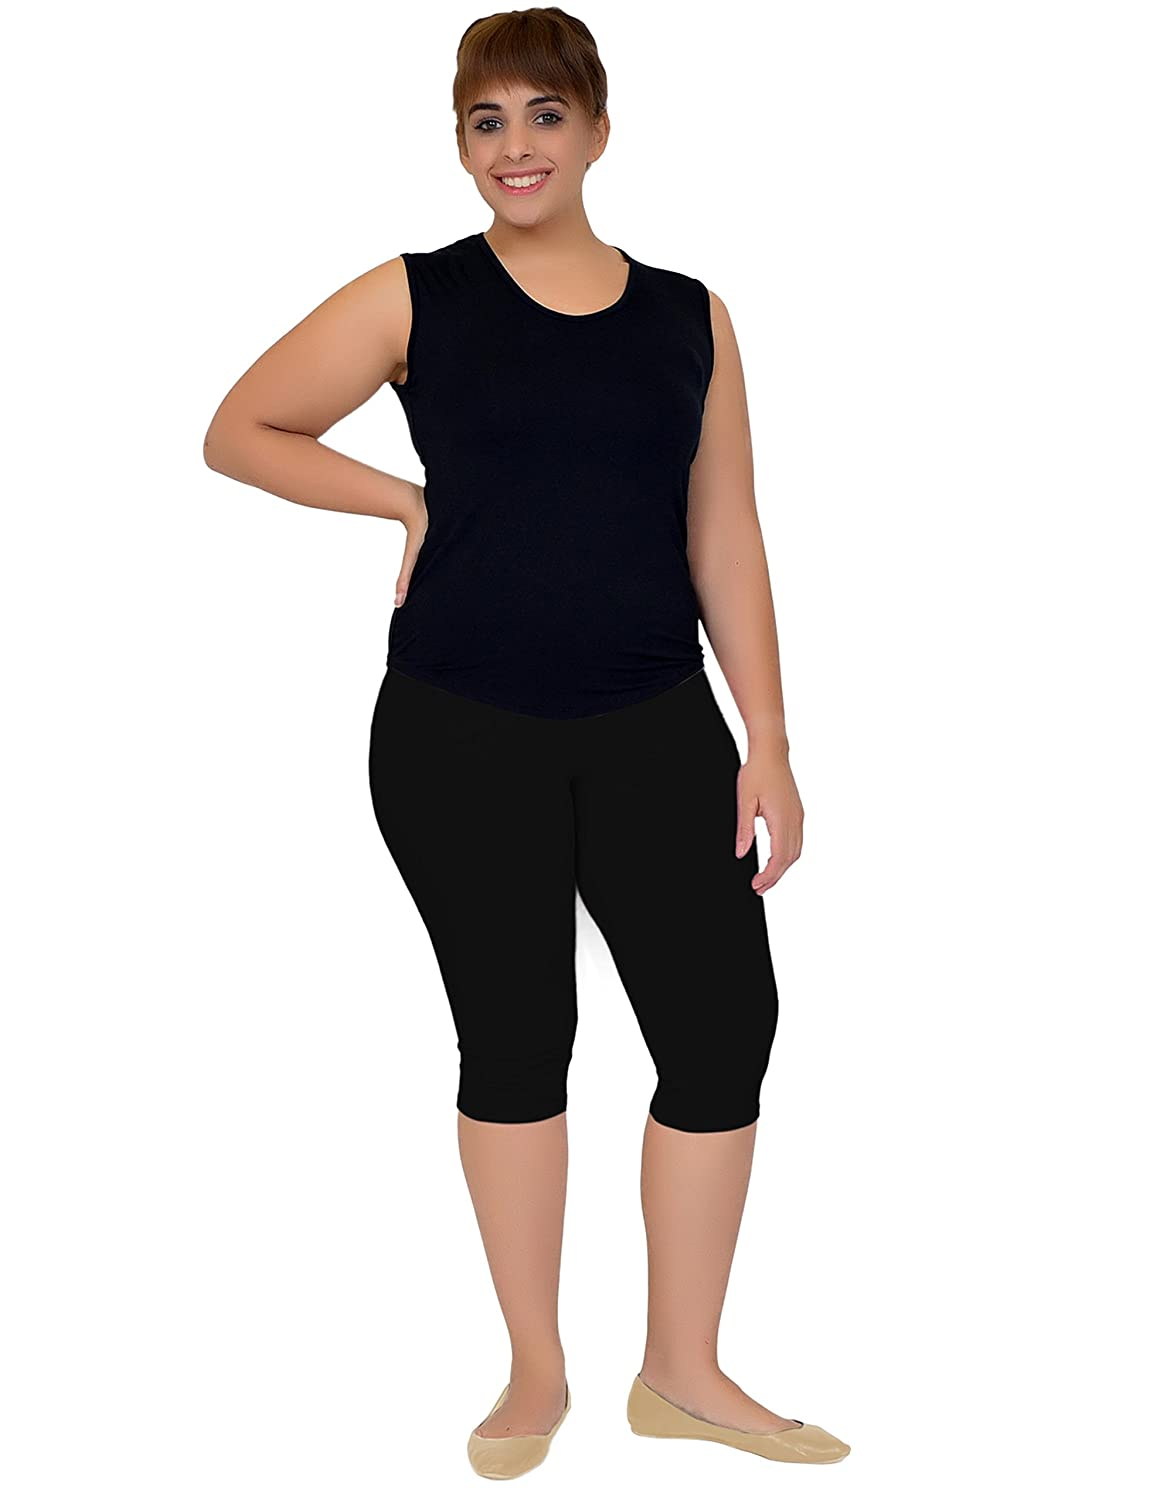 a8a46cb4ea Stretch is Comfort Women's Plus Size Knee Length Leggings at Amazon Women's  Clothing store: